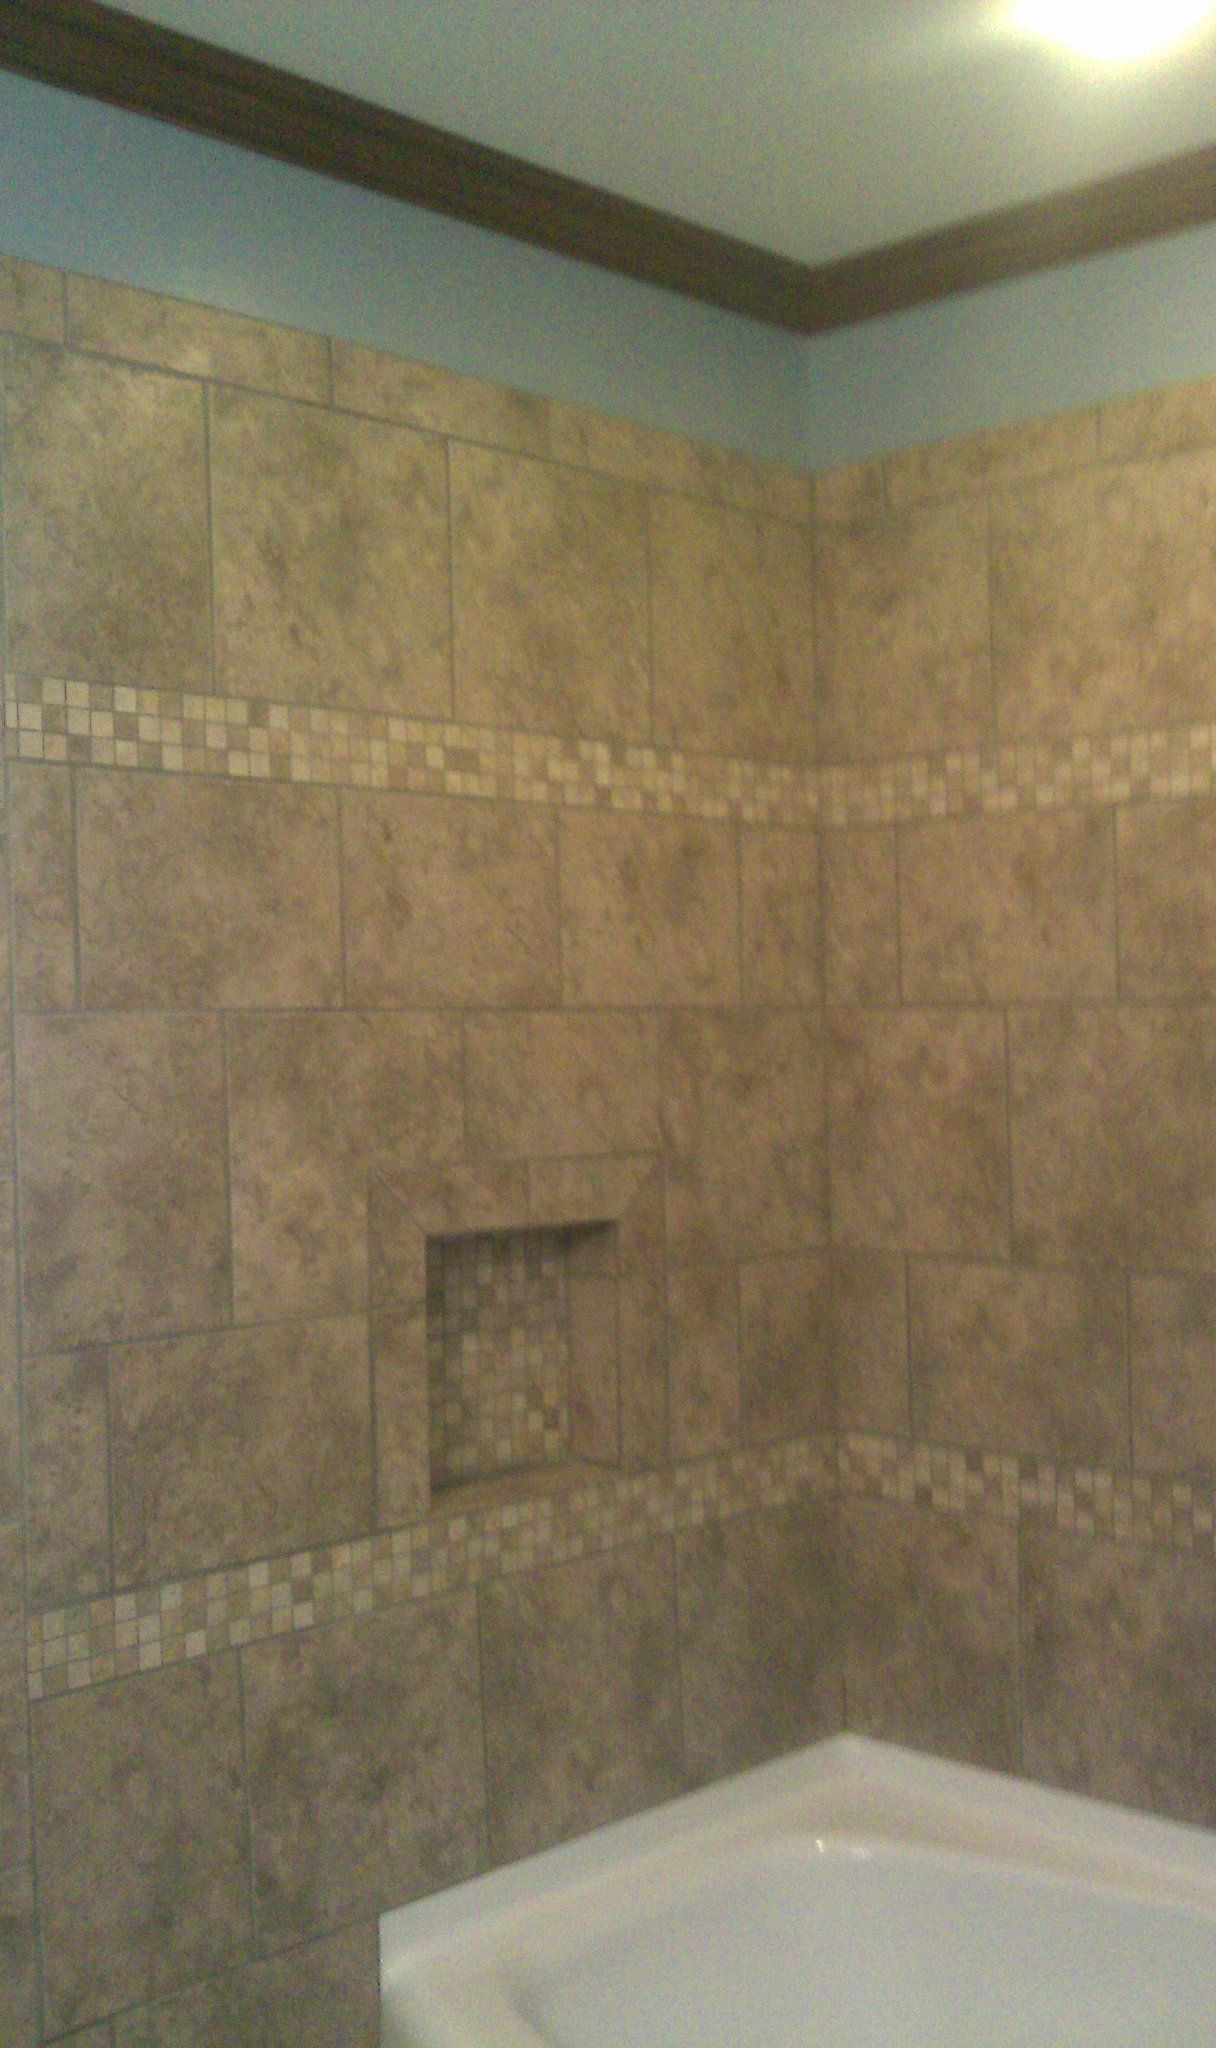 Crown molding in bathrooms - Fiberglass Bathtub Tile Surround Stained Crown Molding